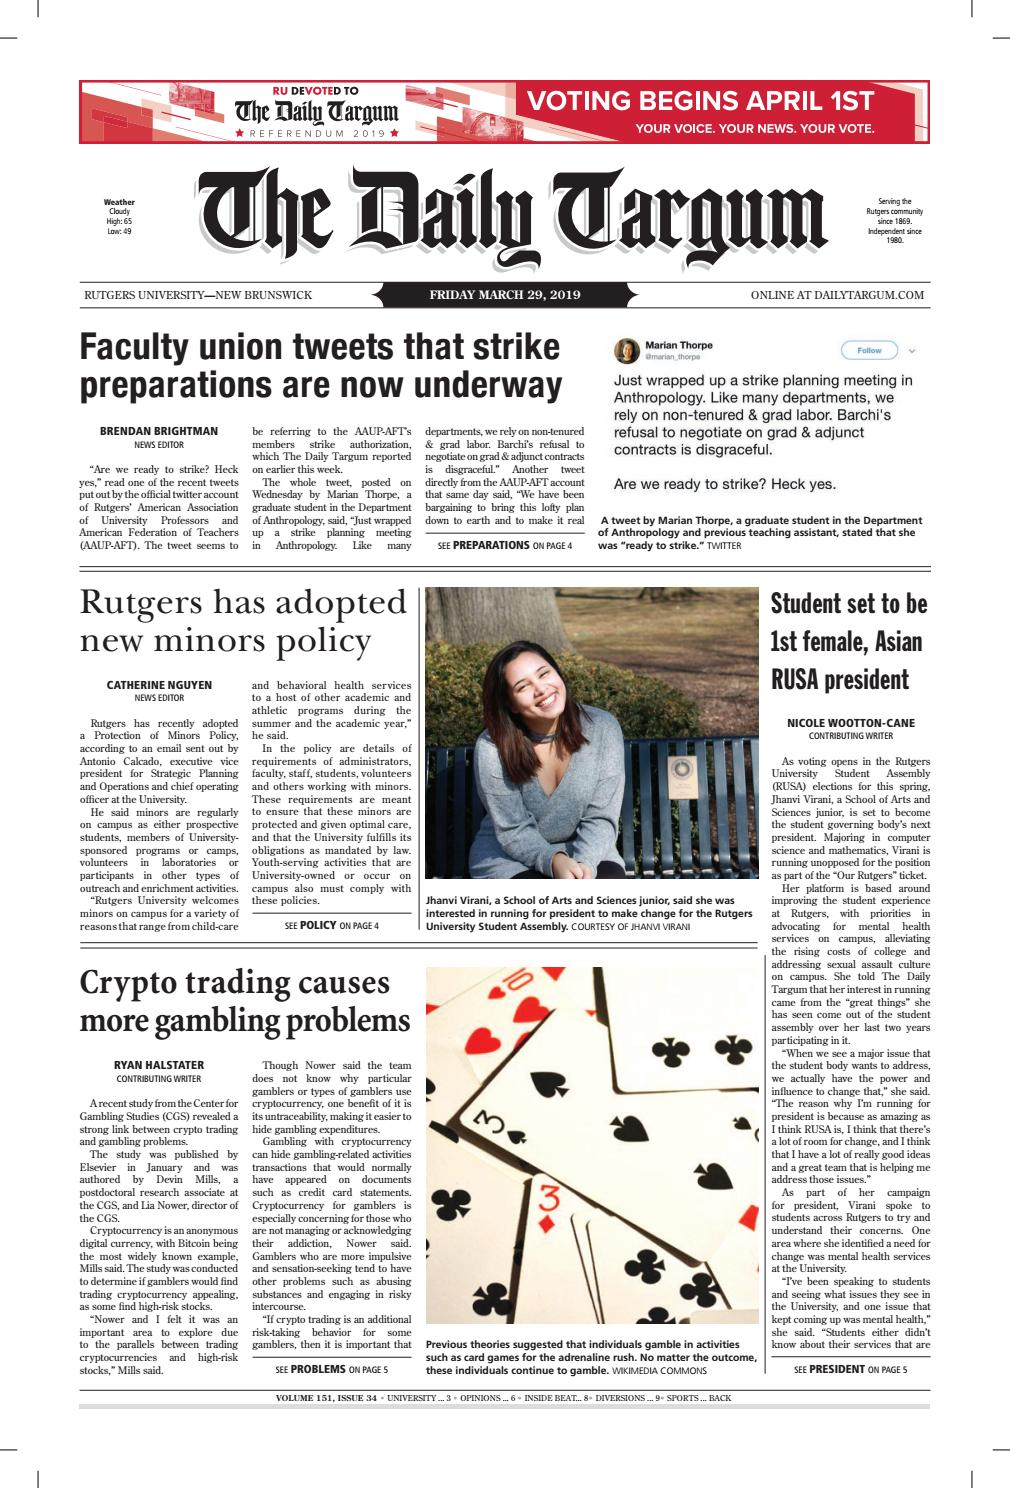 The Daily Targum 3 29 19 by The Daily Targum - issuu